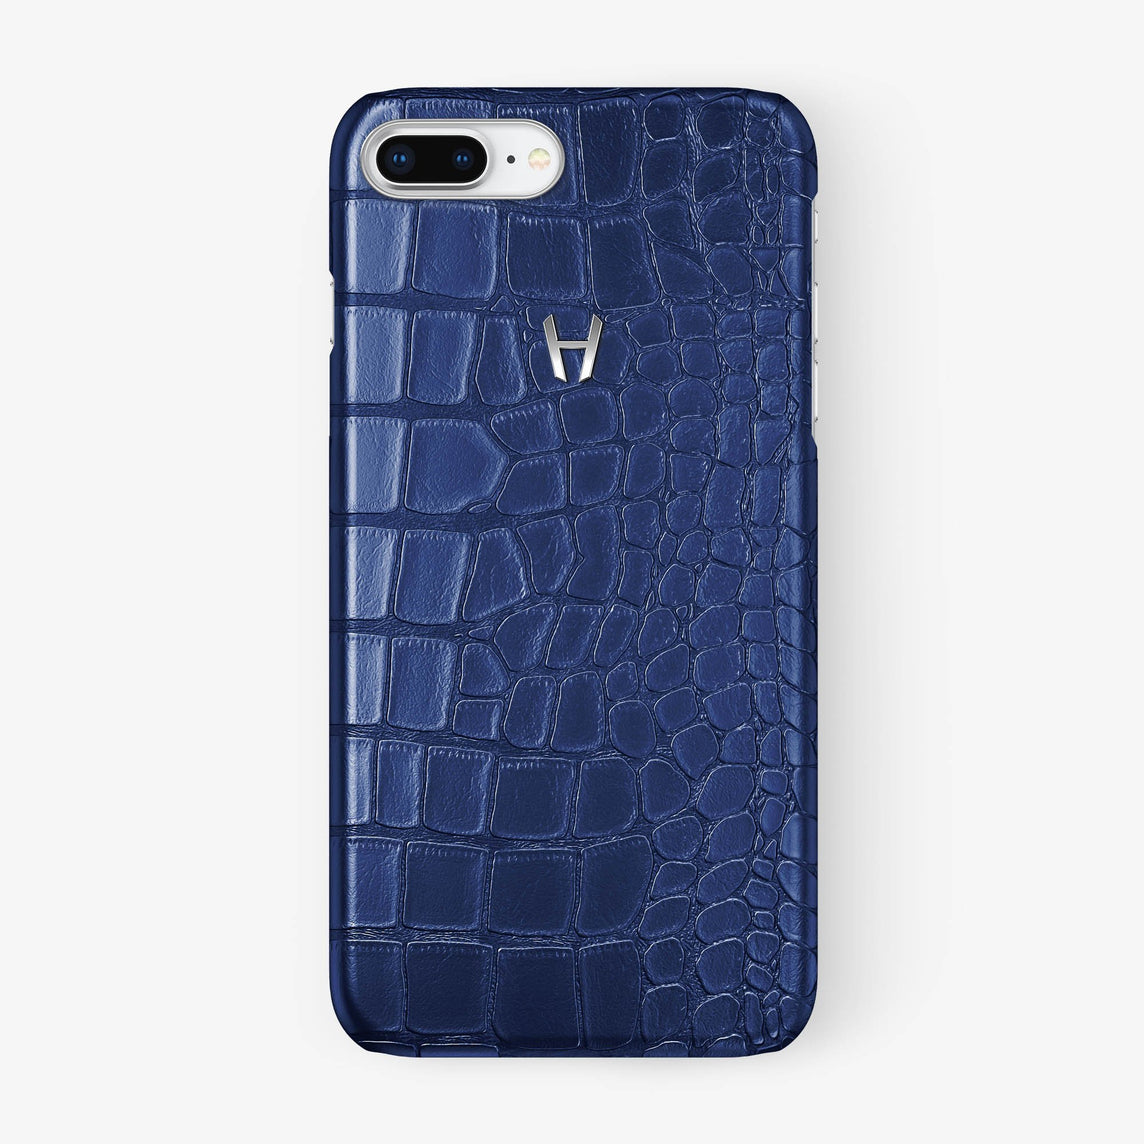 Alligator Case iPhone 7/8 Plus | Navy Blue - Stainless Steel